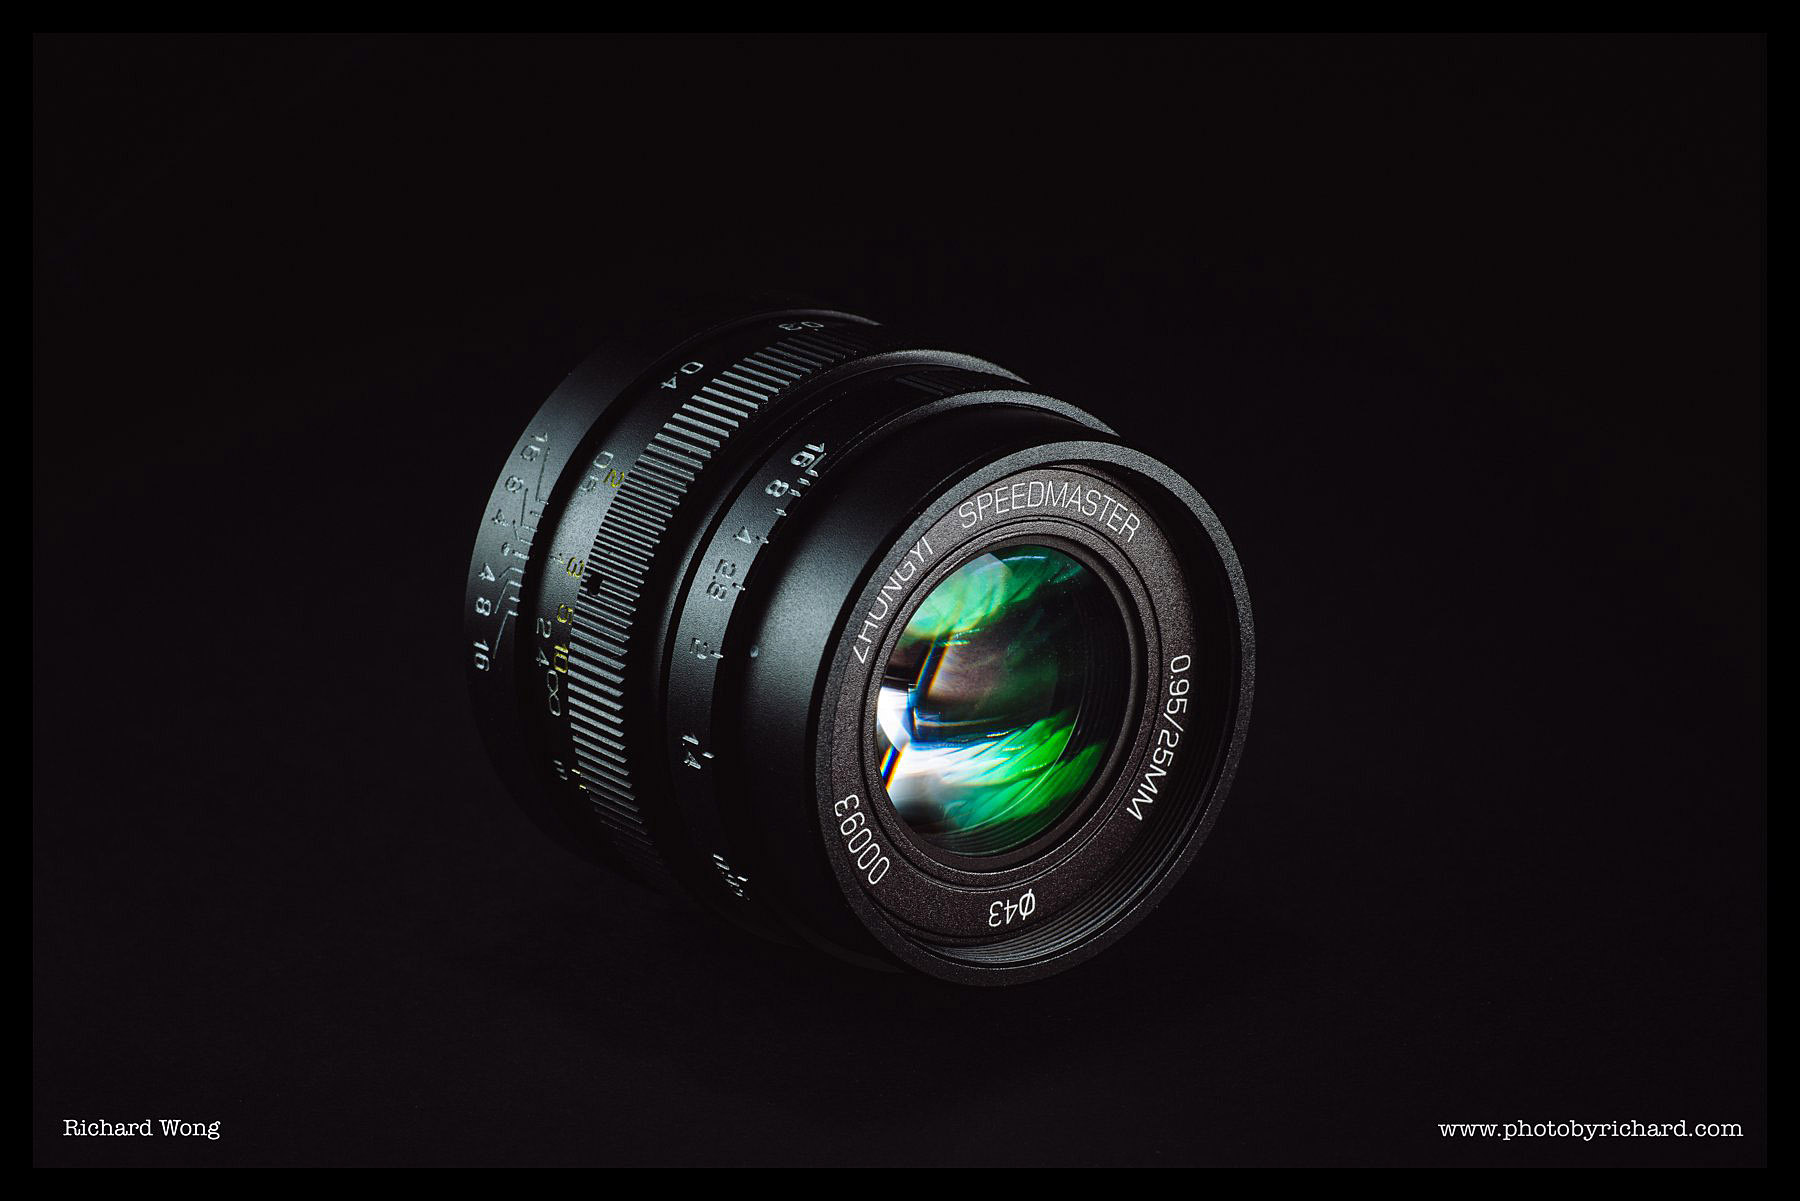 mitakon-speedmaster-25mm-f0.95-review-02